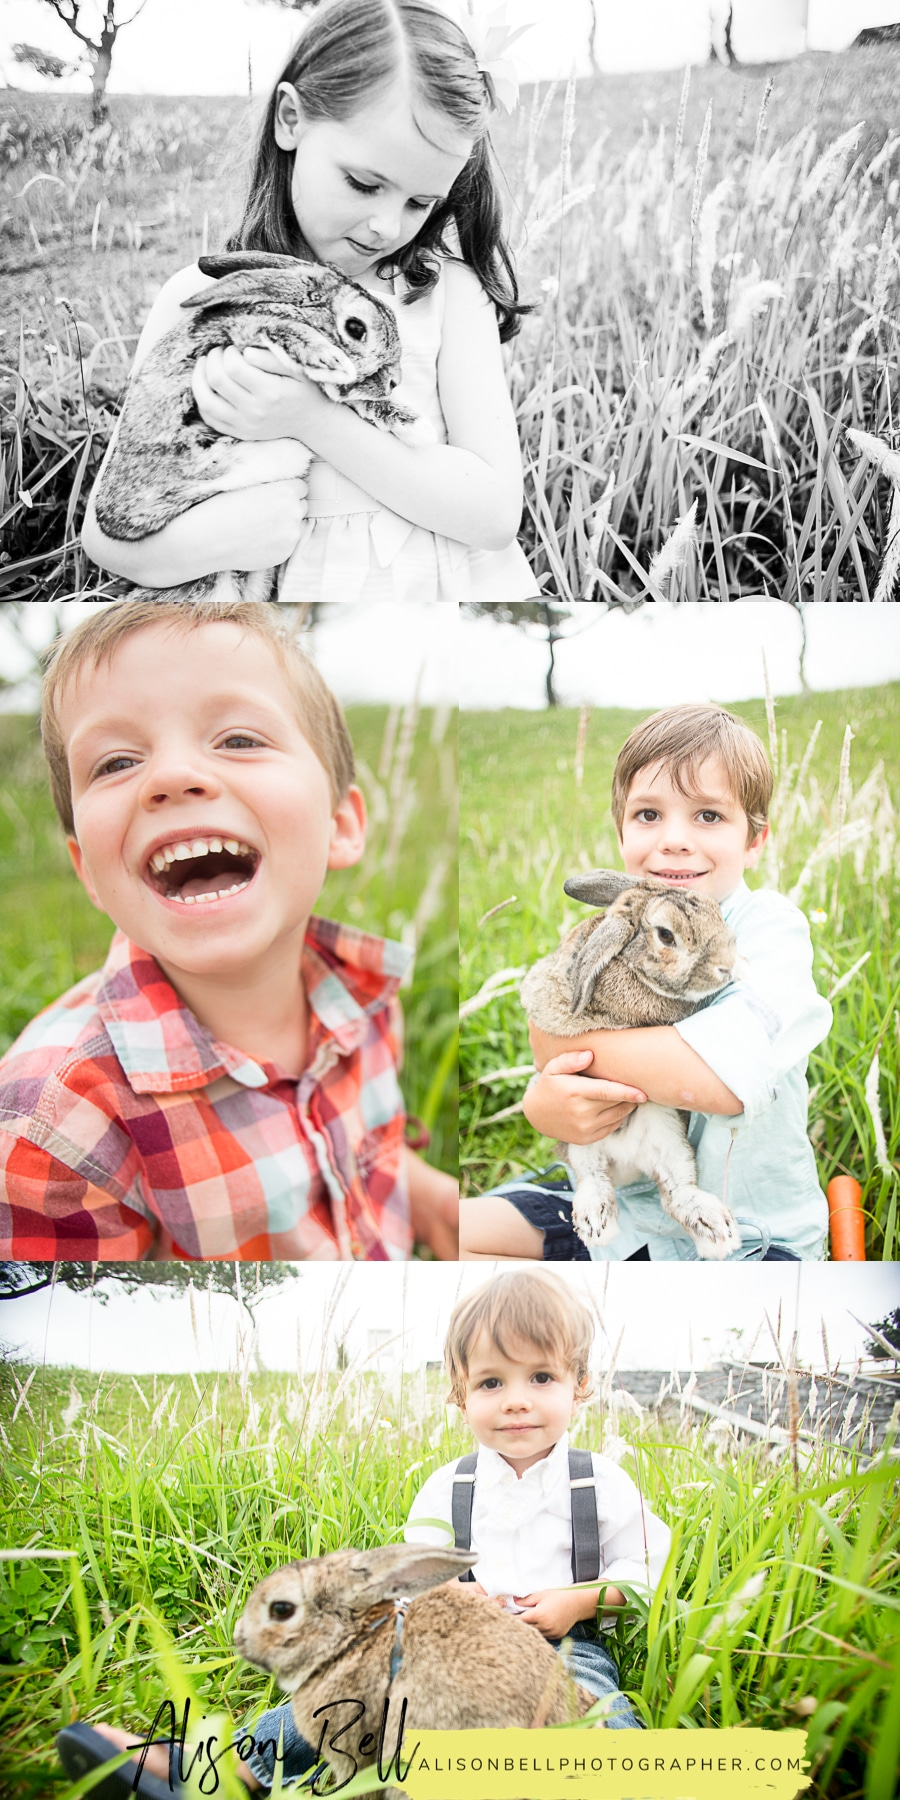 Mini session photography with a live bunny for easter by Alison Bell Photographer